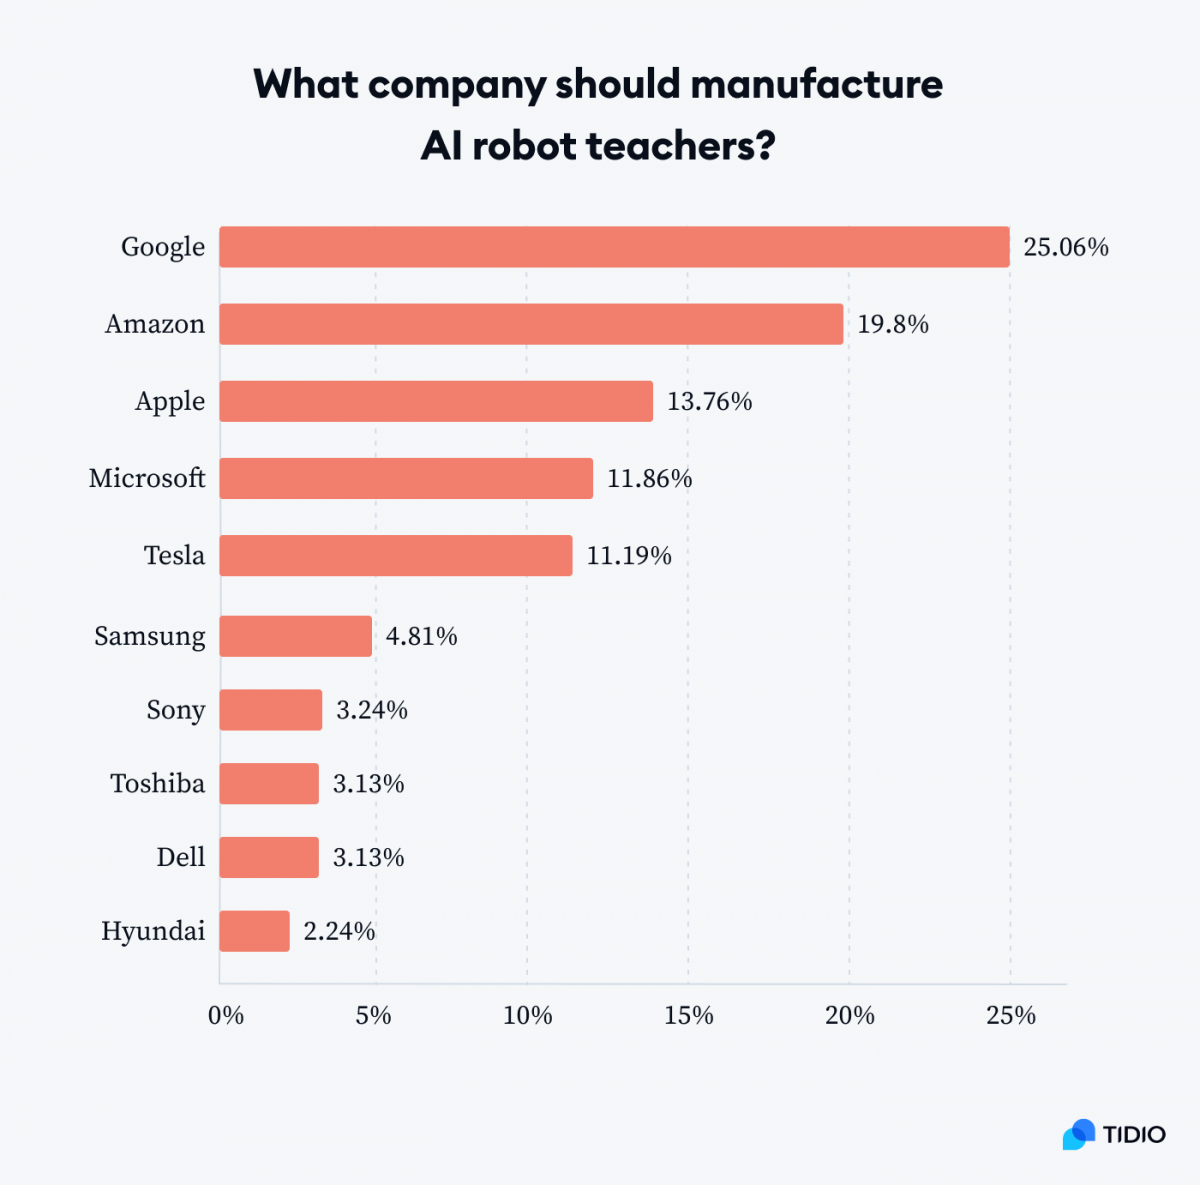 A graph showing the most common answers by % to a question: What company should manufacture AI robot teachers?